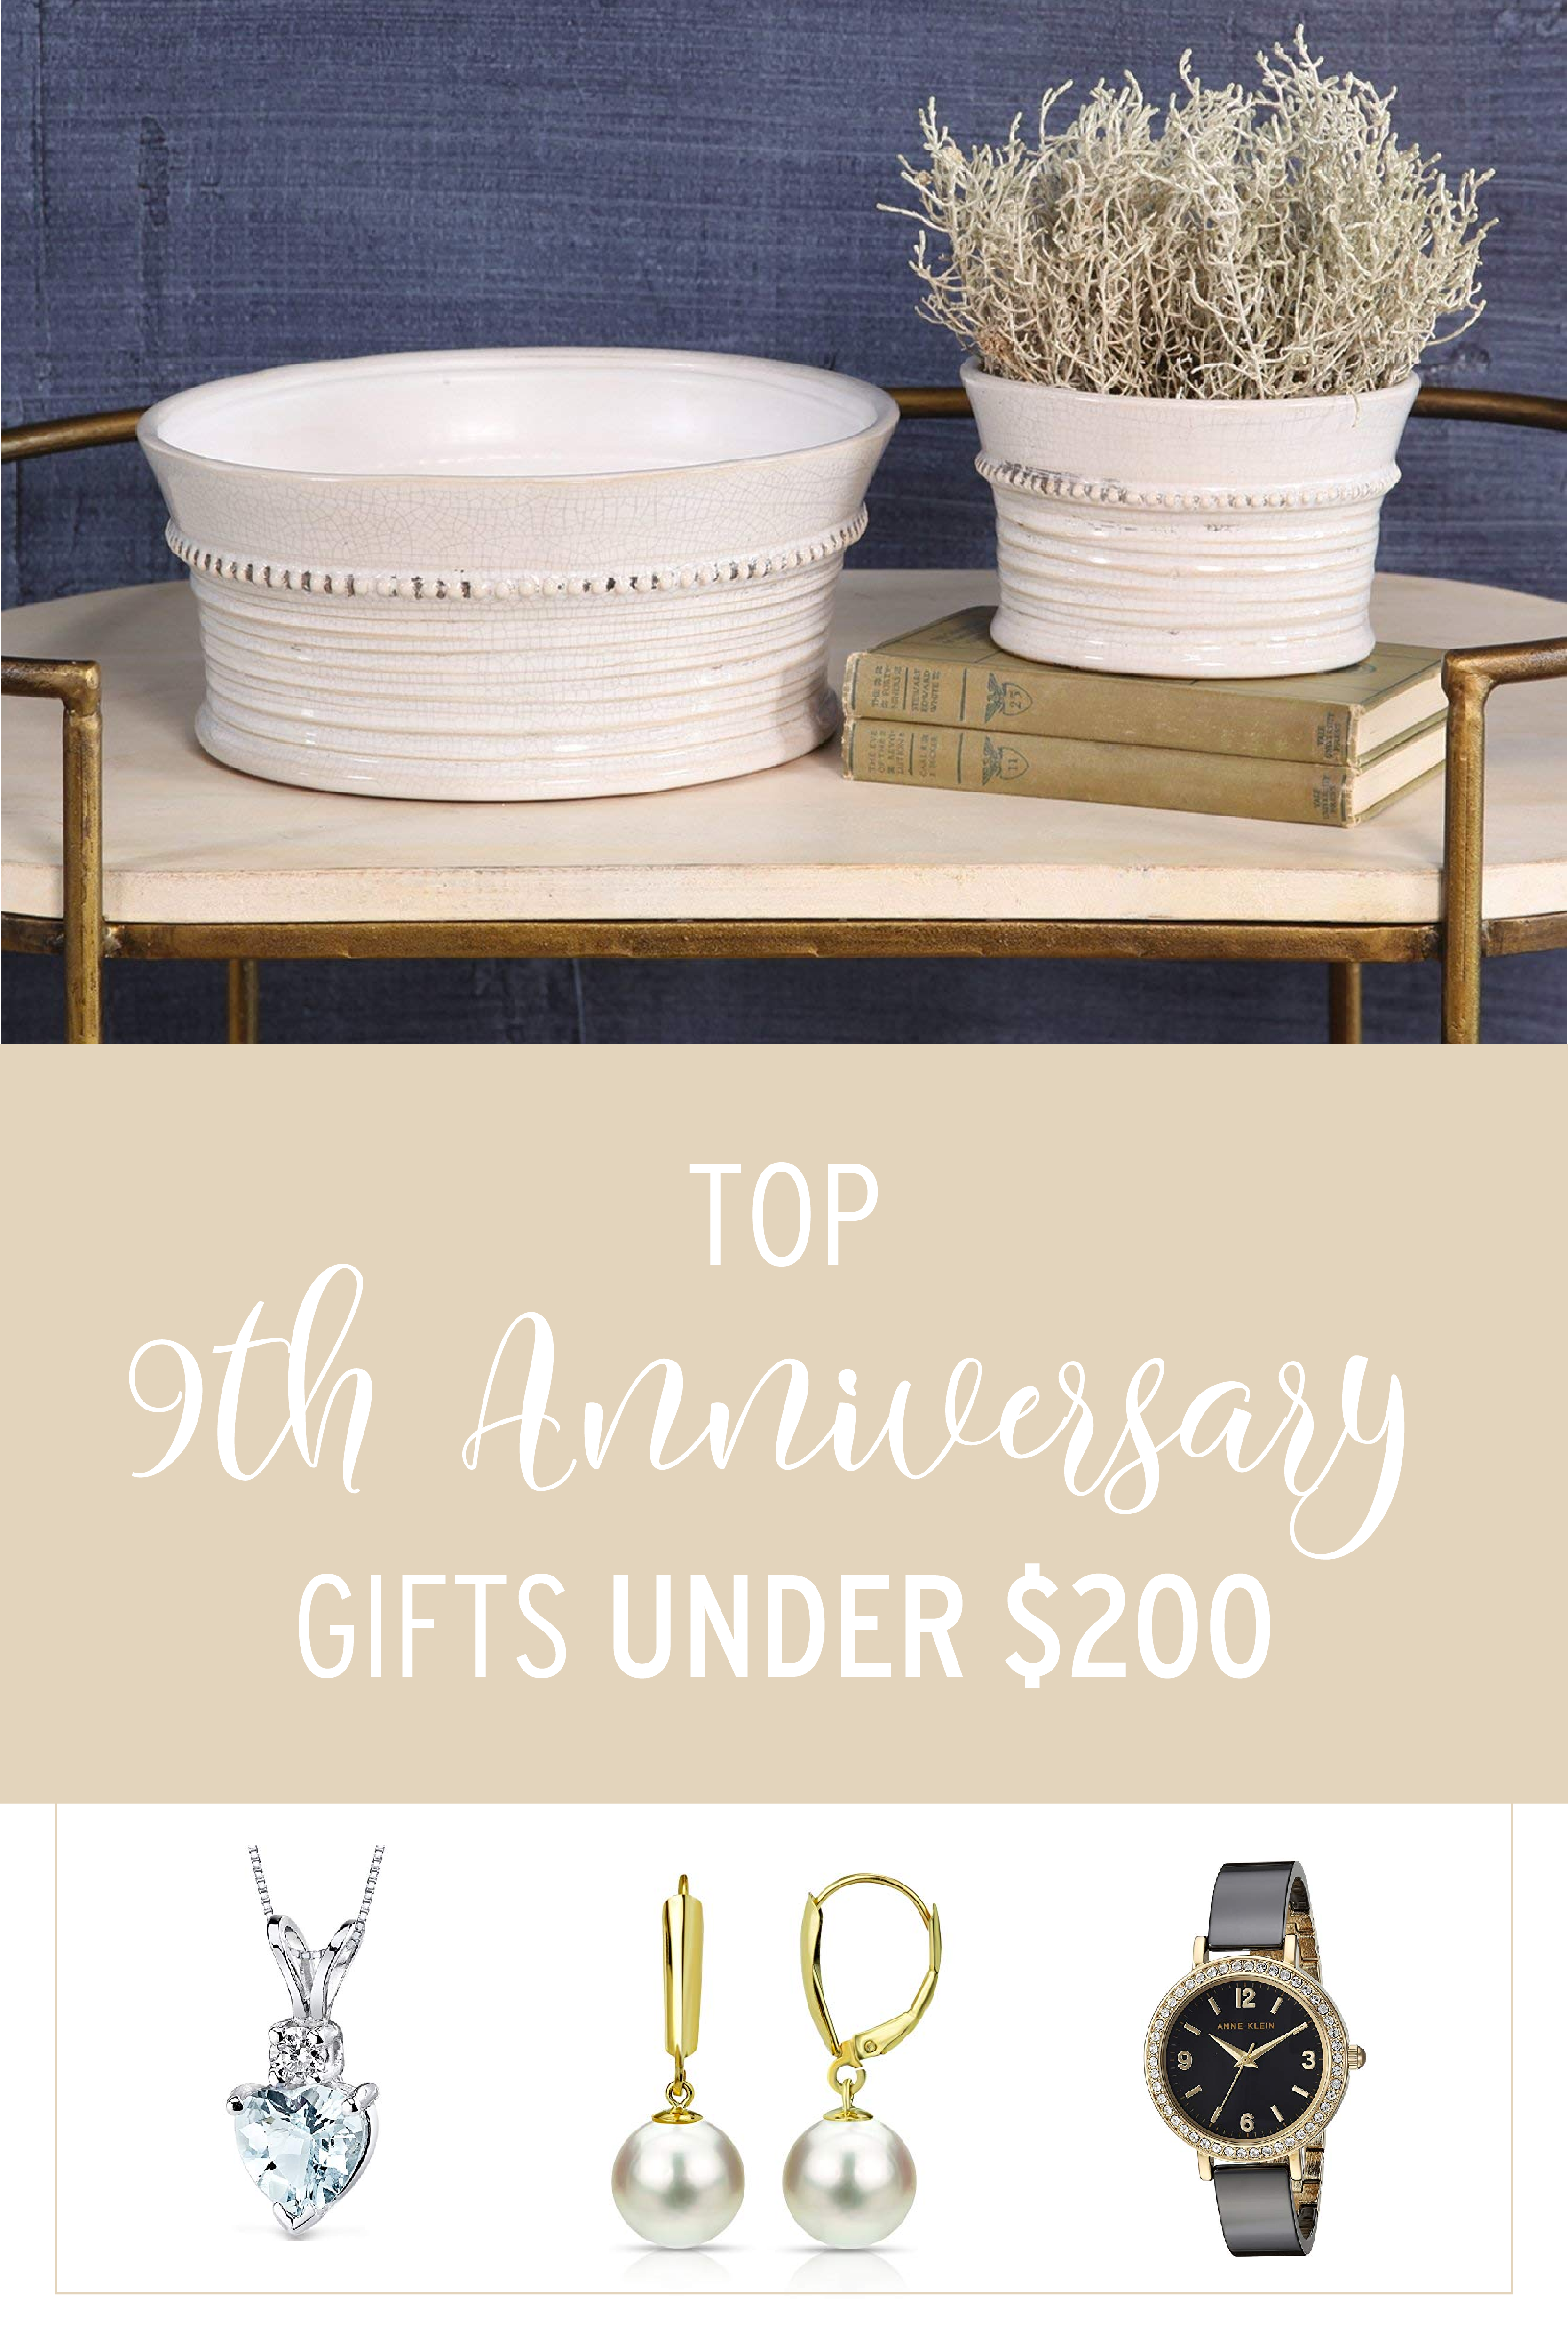 9th Anniversary Gifts for Her Under 200 Leather